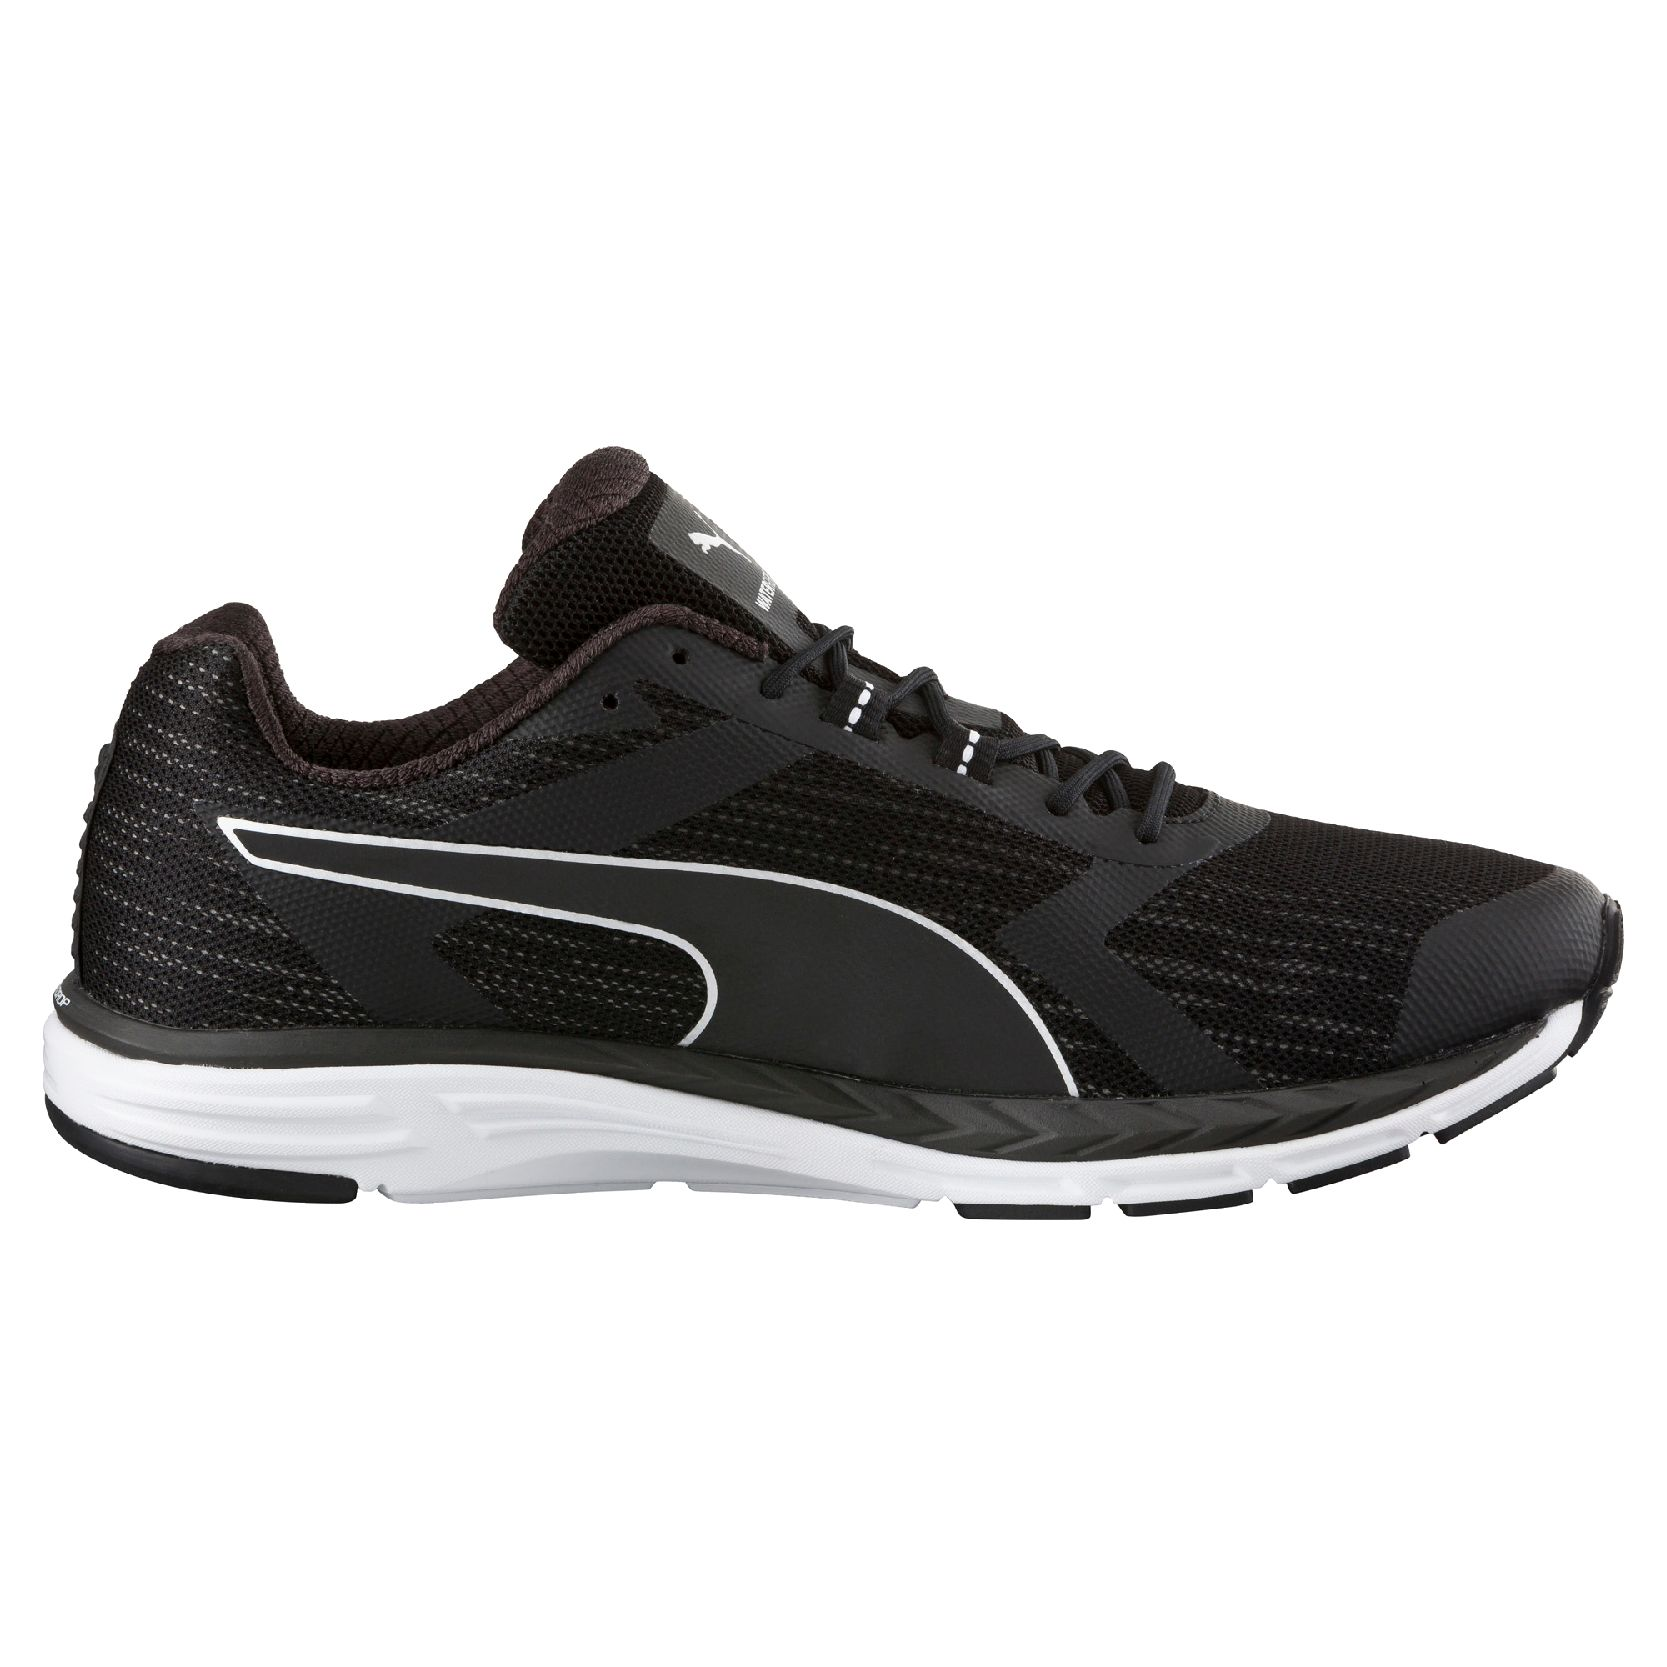 Speed Cat Shoes Size Quide